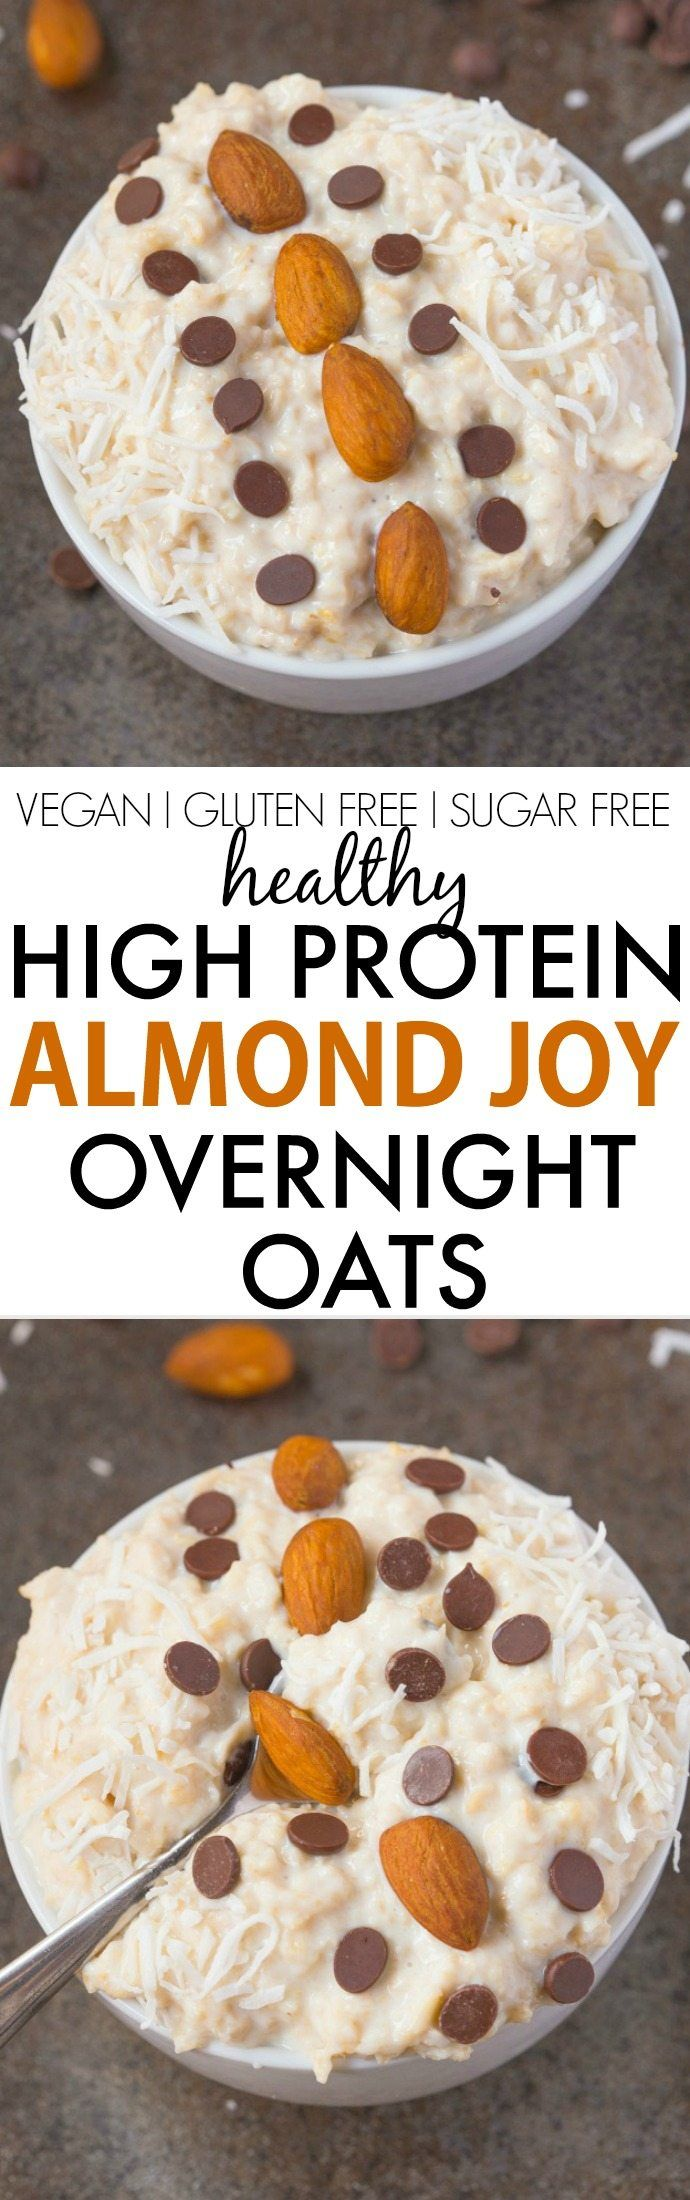 Healthy High Protein Almond Joy Overnight Oats- Easy, satisfying and tasting like dessert for breakfast, this healthy candy bar version has NO sugar or dairy! {vegan, gluten free, sugar free recipe}- thebigmansworld.com